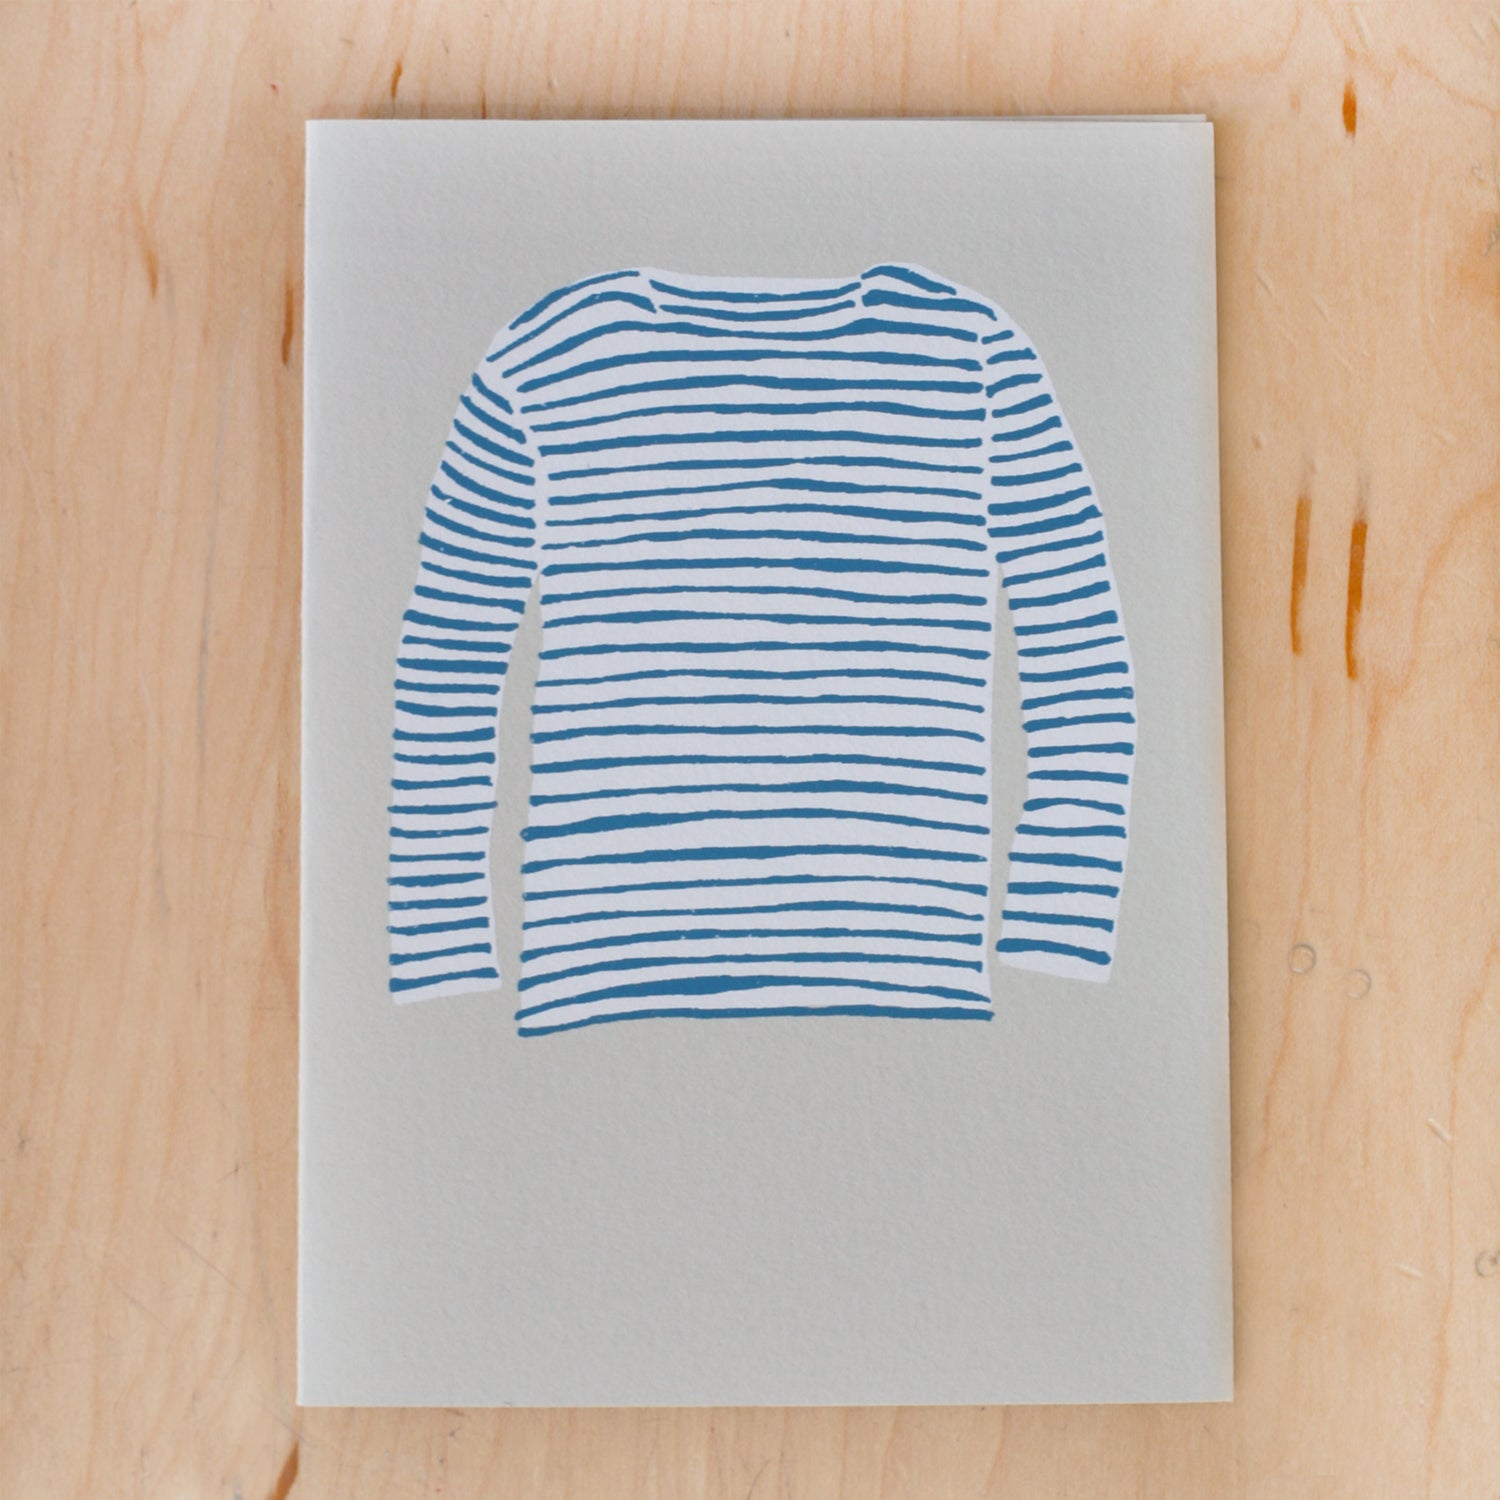 Image of Striped Shirt